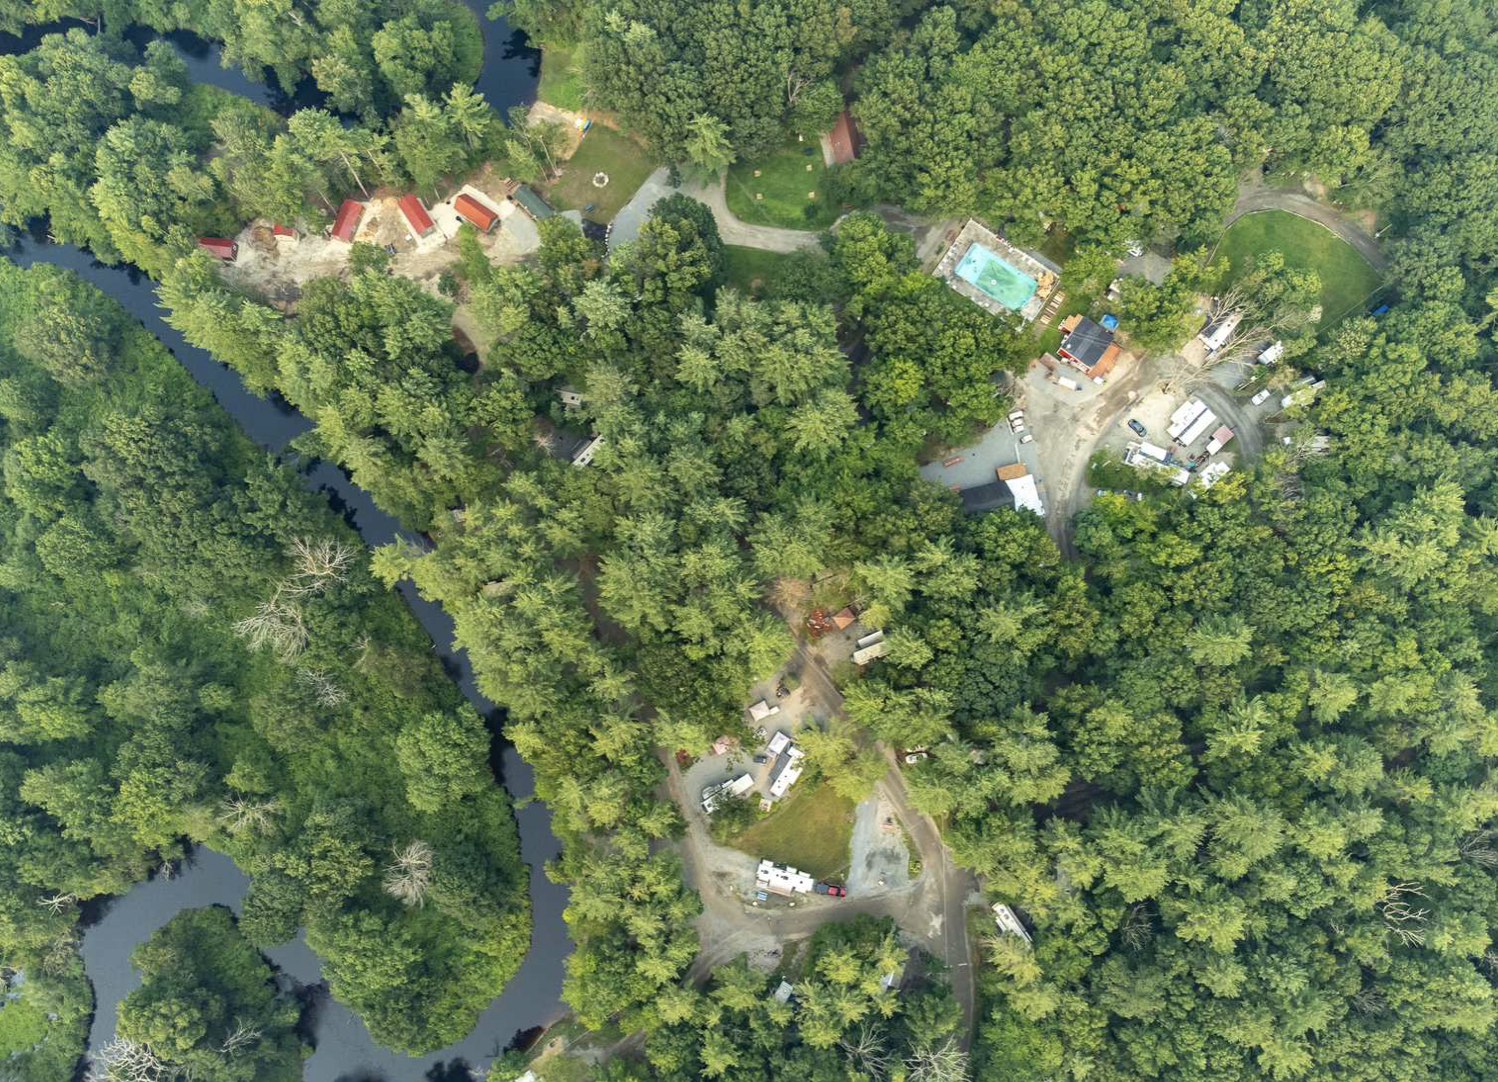 Aerial view of Exter Elms campground with trees, river, pool and cabins.